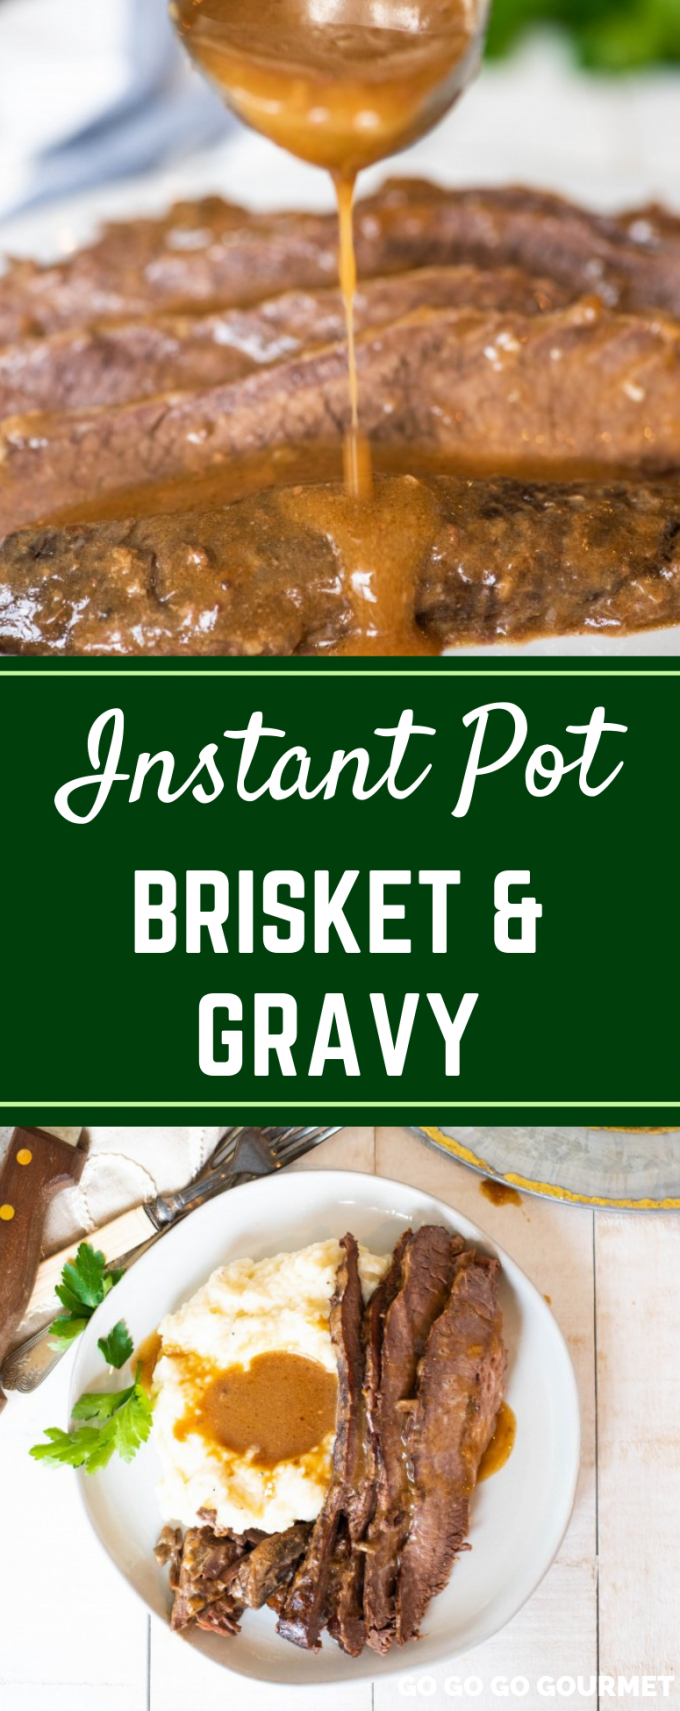 Pressure cooking just got a whole lot better thanks to this Instant Pot Tender Brisket and Gravy recipe! This easy brisket doesn't use BBQ or red wine, but rather soup and gravy mixes to give it an amazing flavor. You could even turn the leftovers into tacos! #gogogogourmet #instantpotbrisketandgravy #easyinstantpotrecipes #pressurecookerrecipes